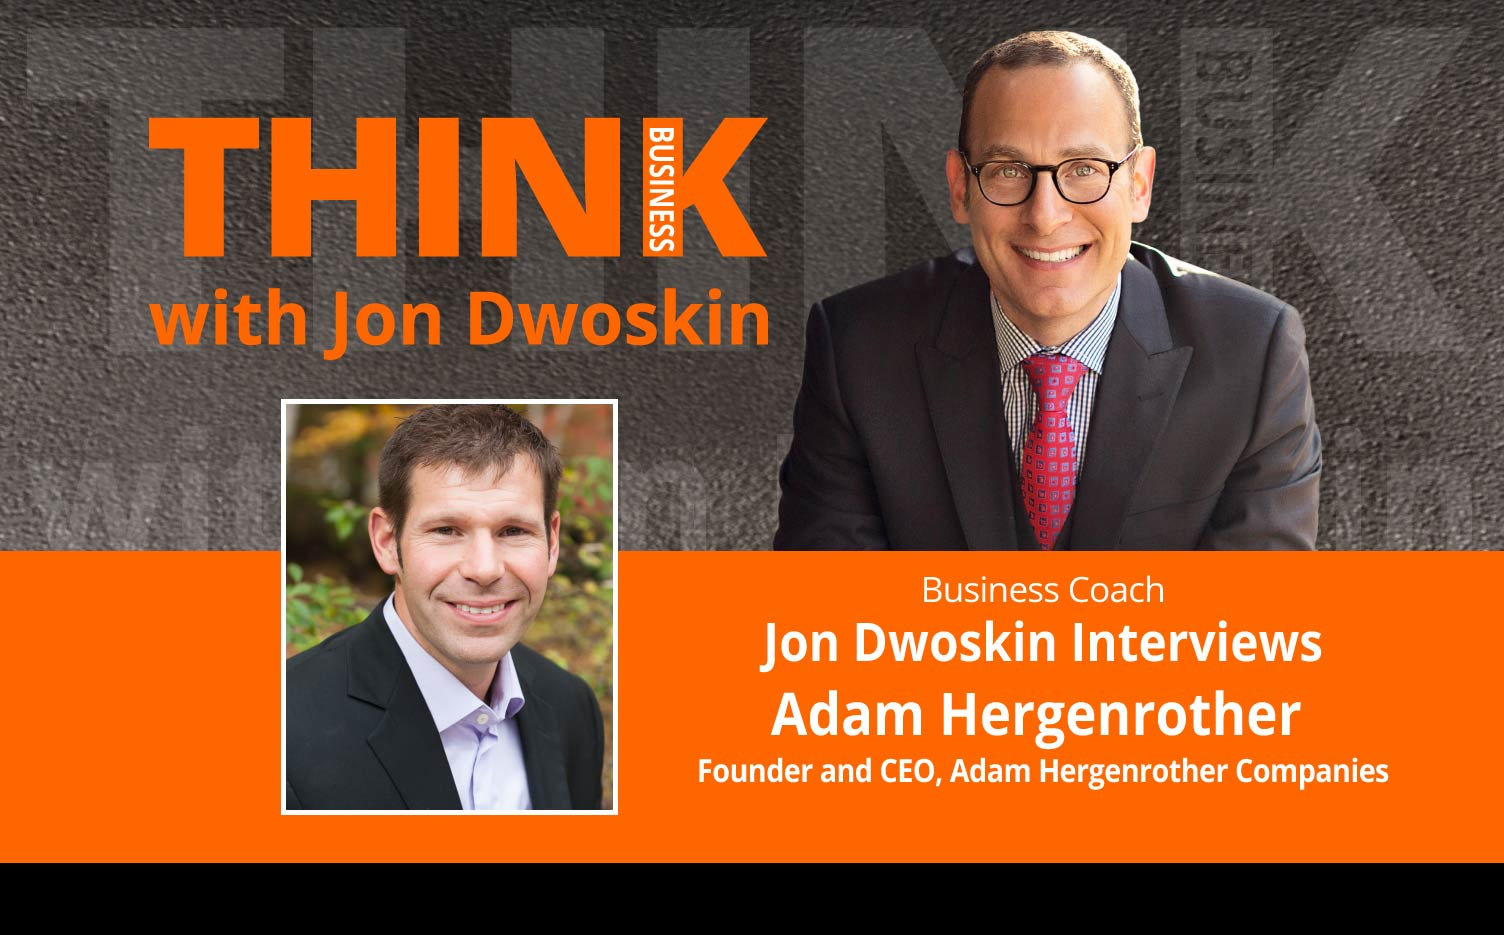 THINK Business Podcast: Jon Dwoskin Interviews Adam Hergenrother, Founder and CEO, Adam Hergenrother Companies